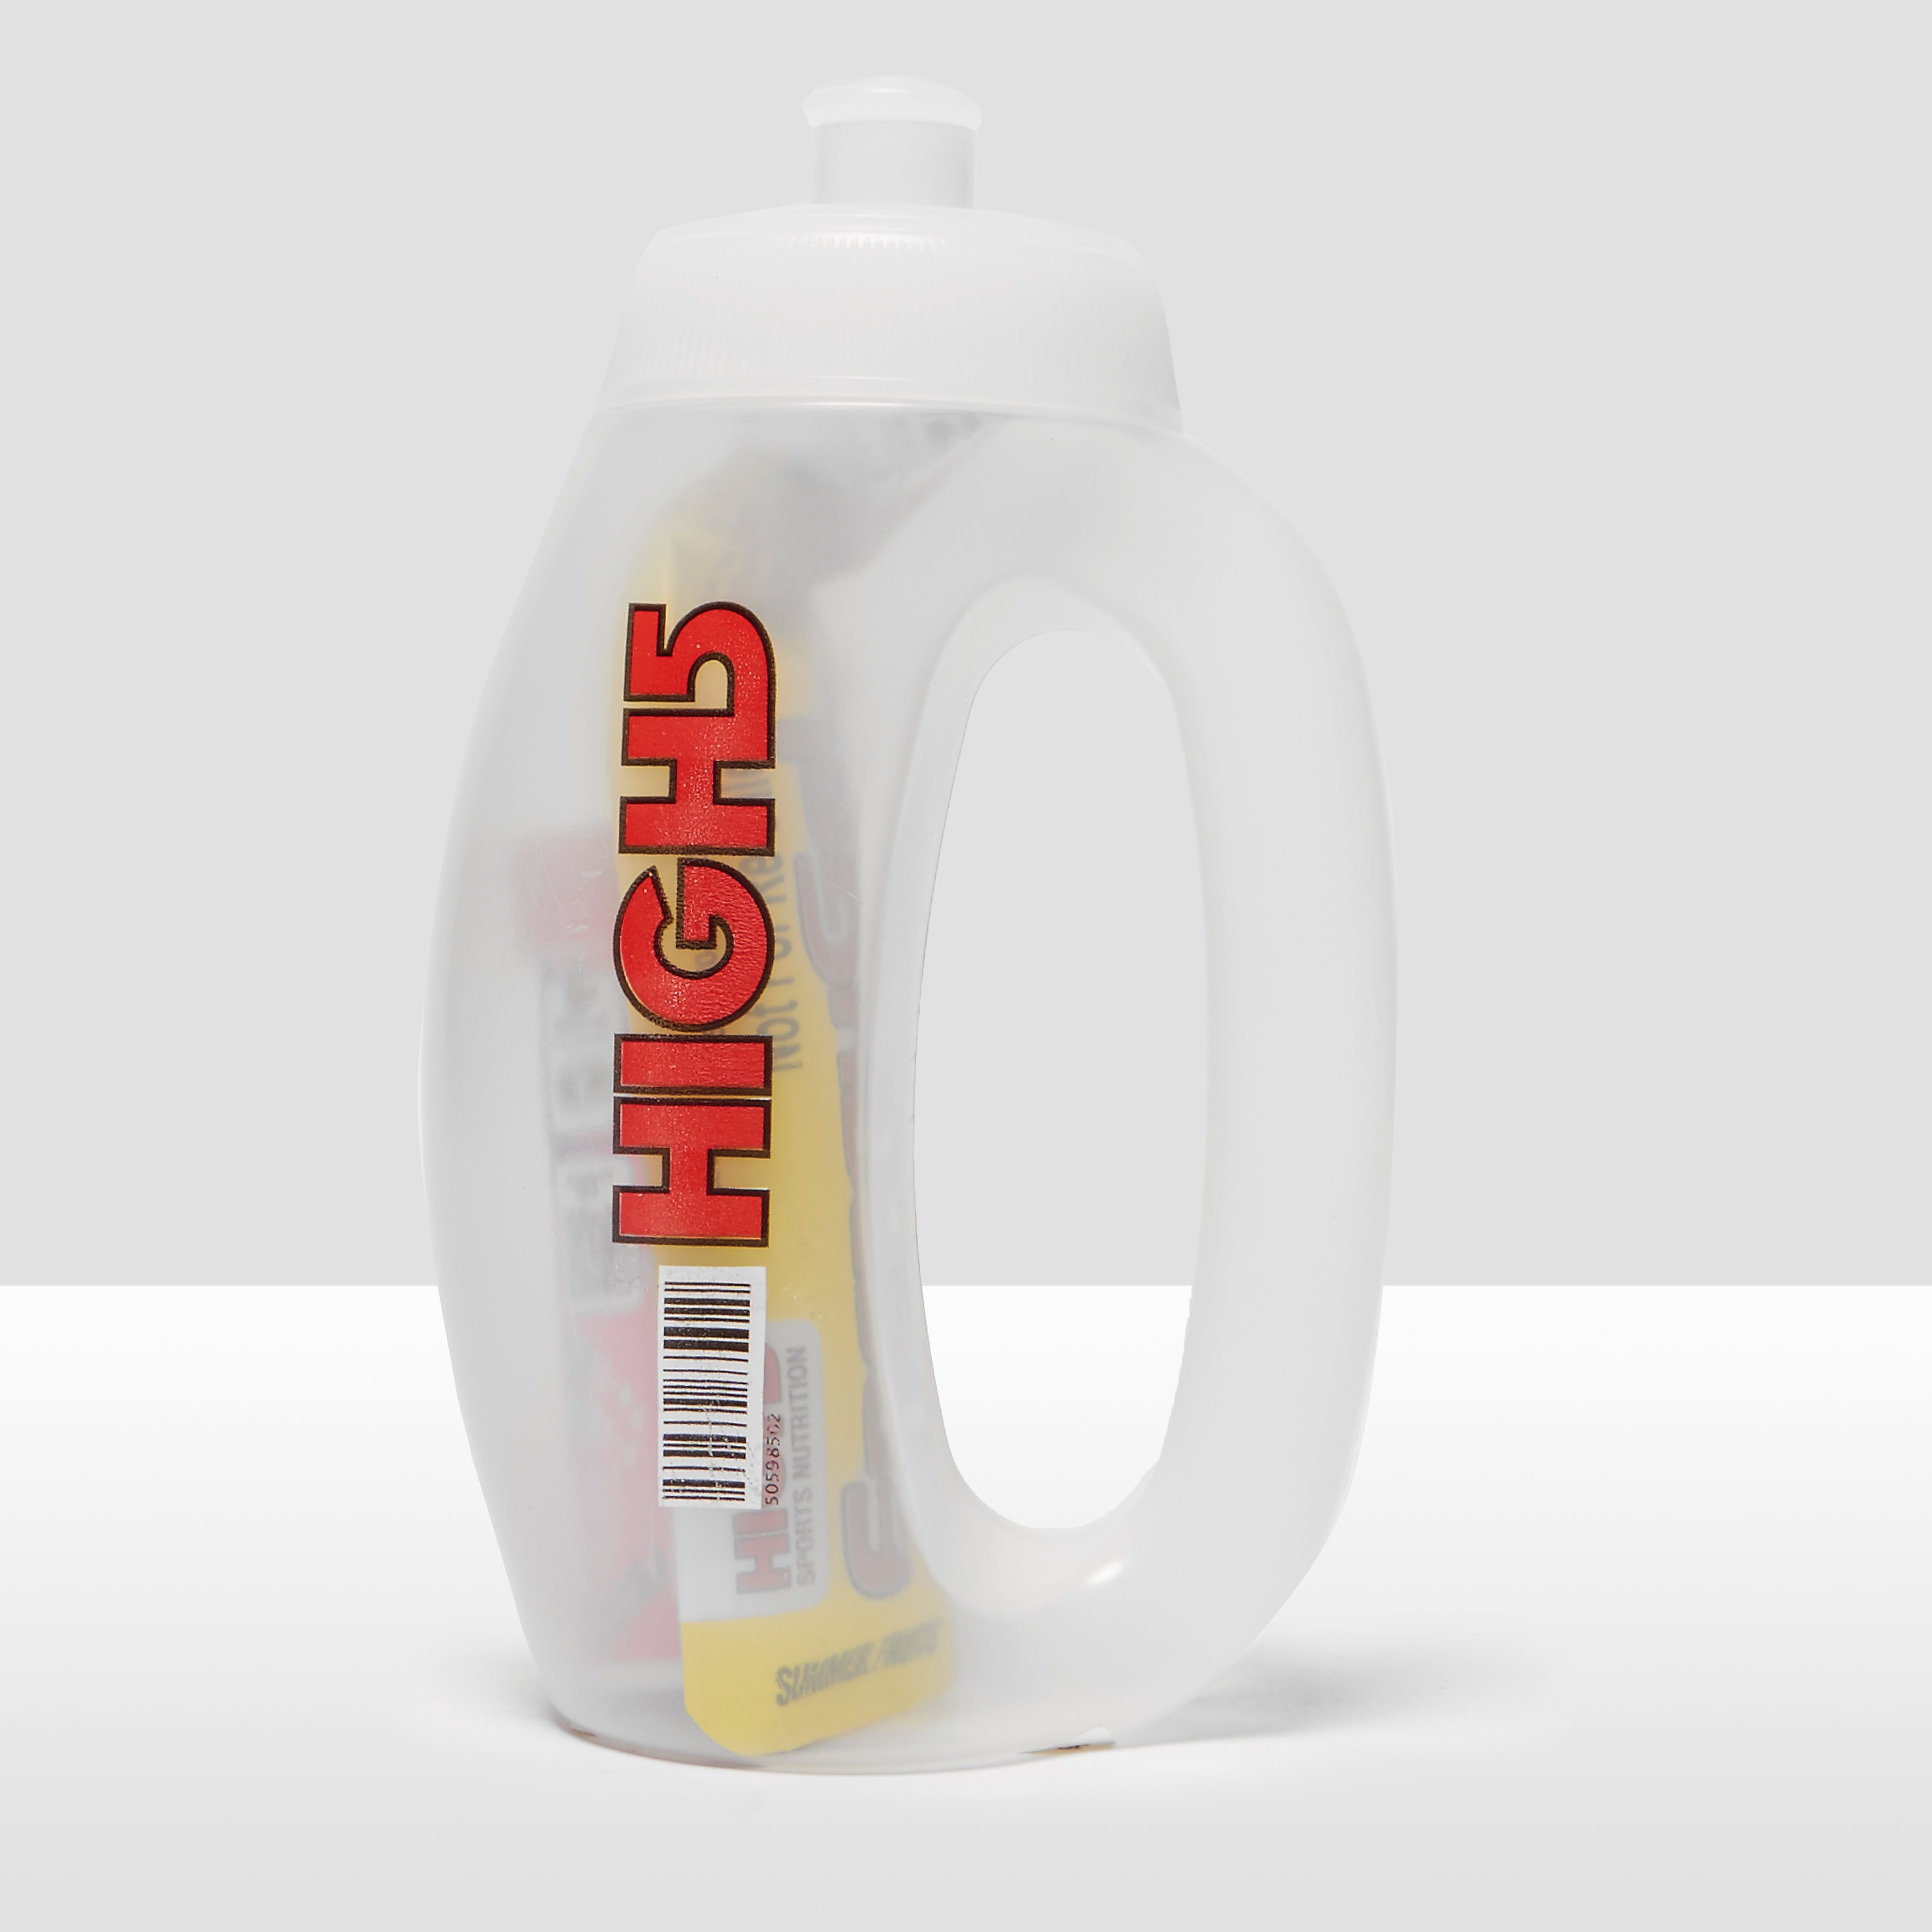 High 5 Bottle Bundle-Run Bottle, Zero 10 Berry Hydration Tube and Summer Fruits Energy Gel